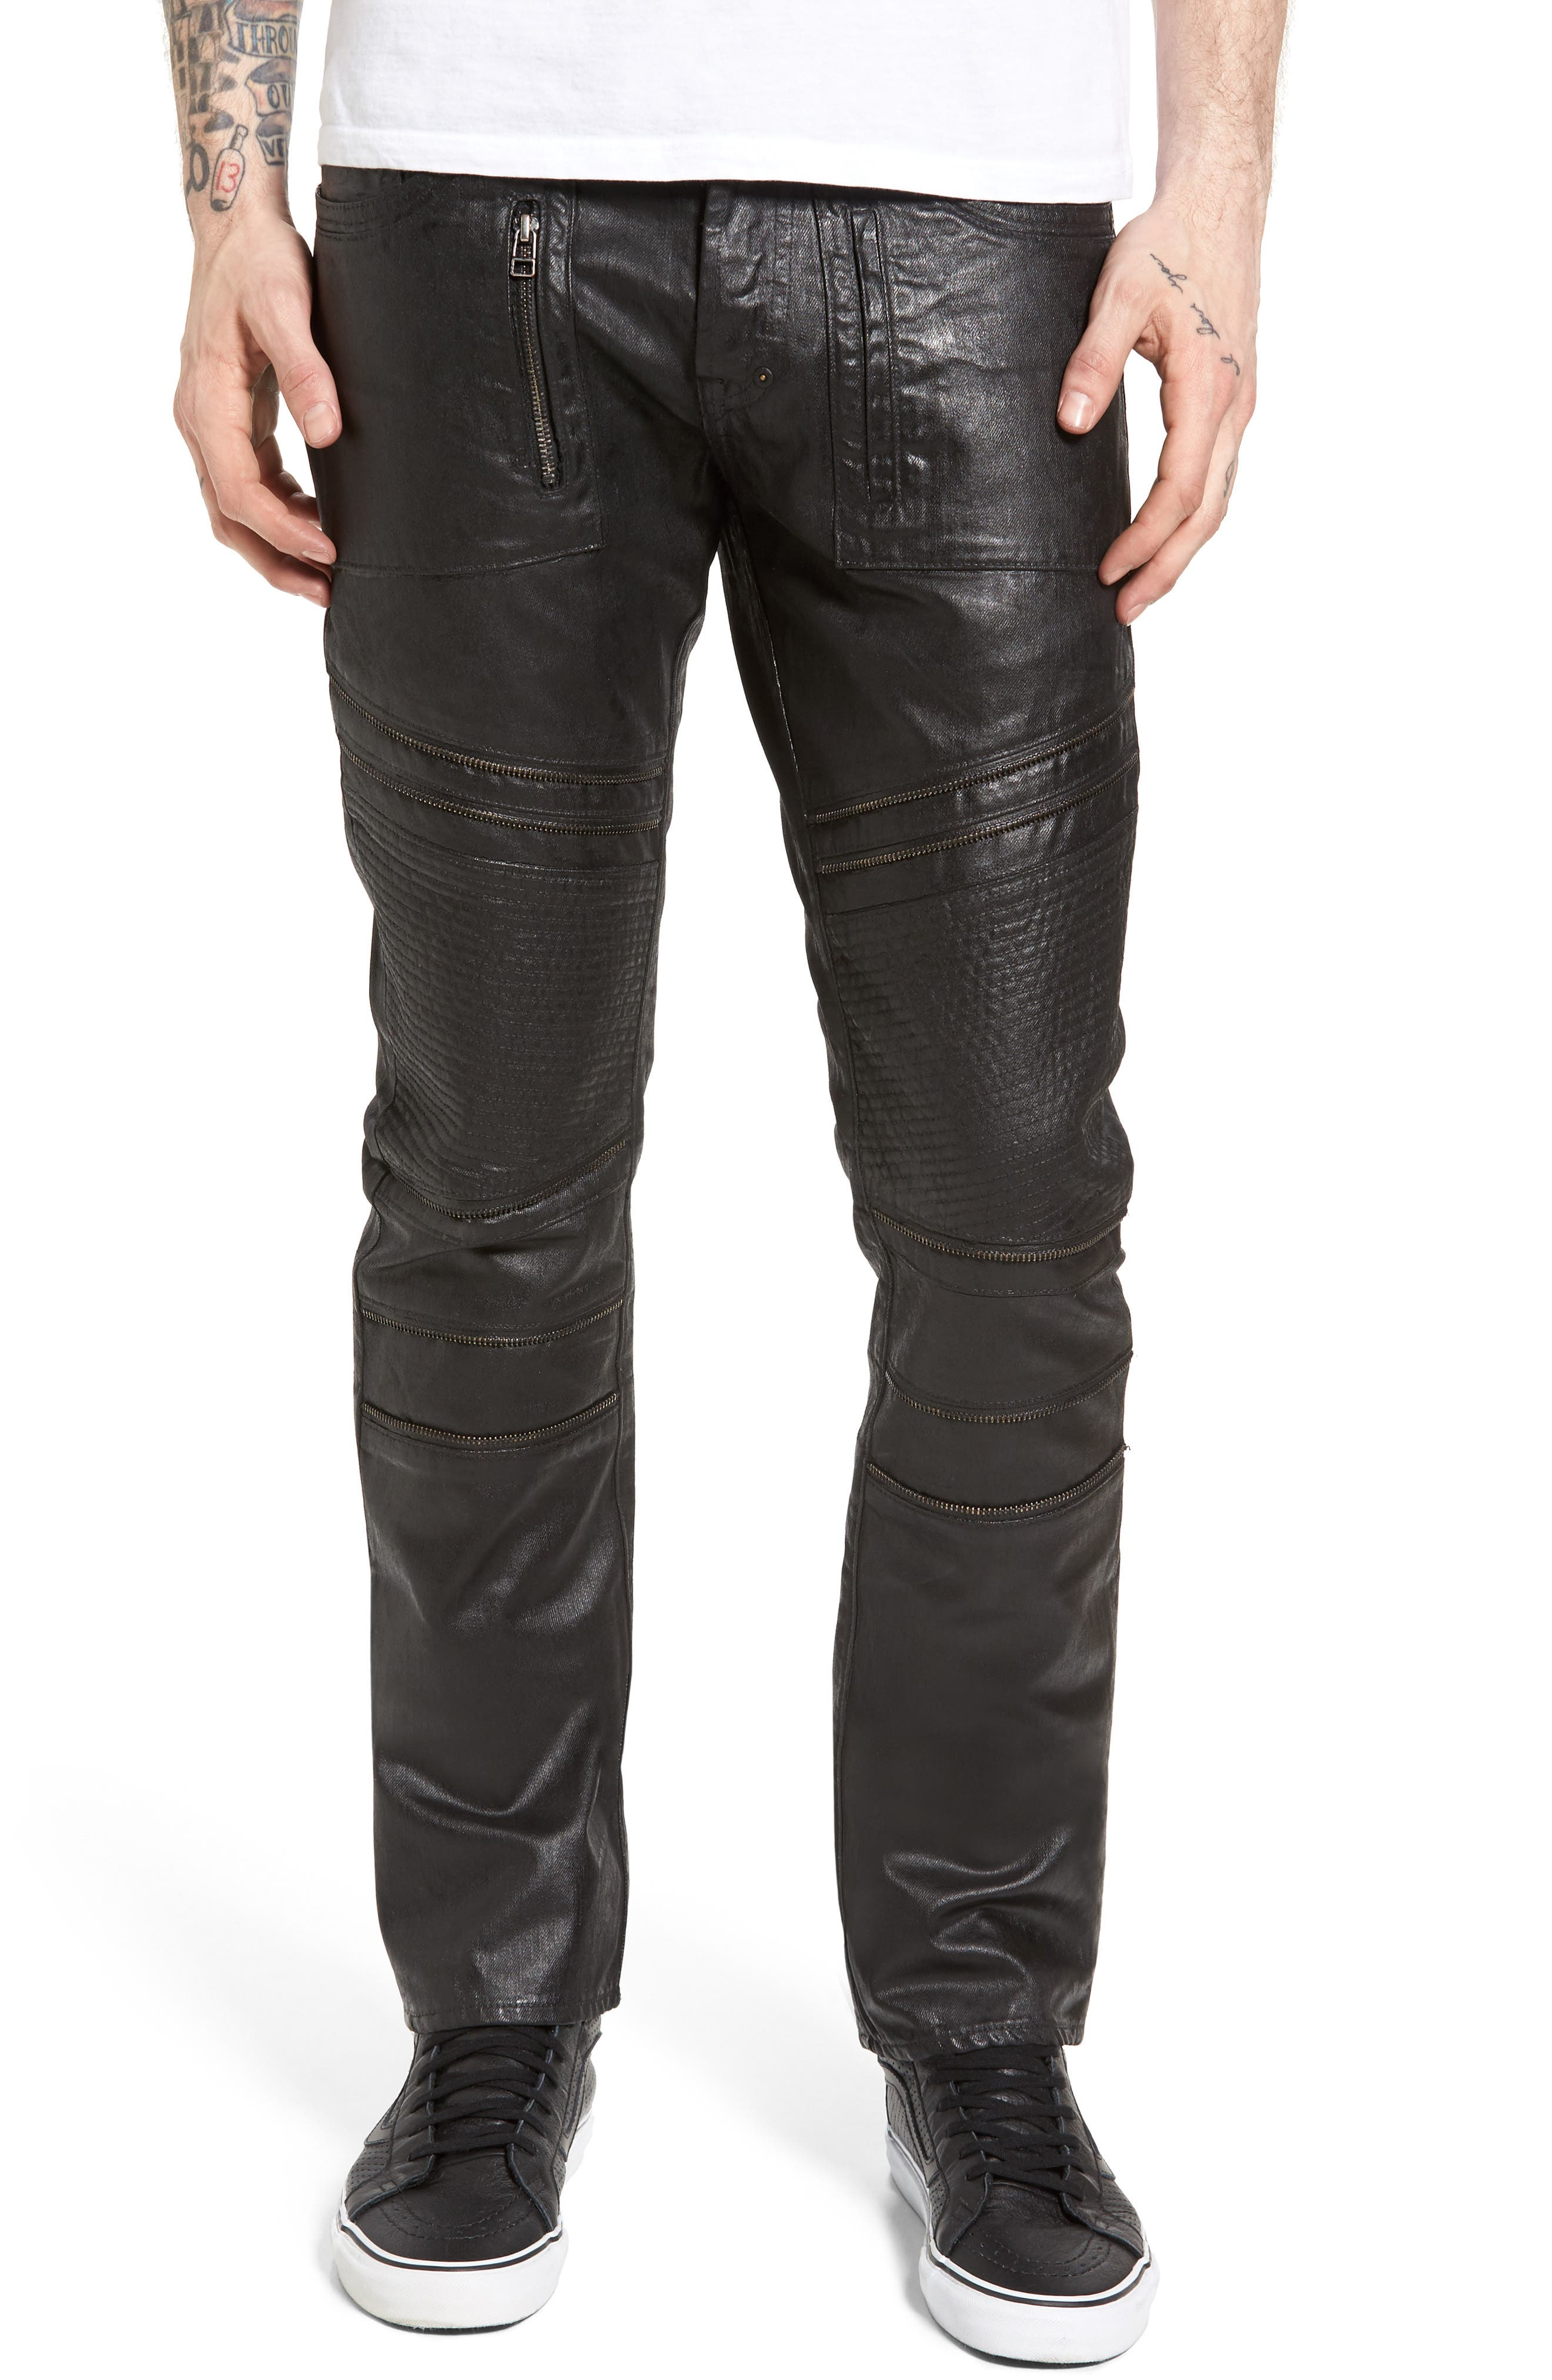 Demon Slim Straight Coated Jeans,                         Main,                         color, 001